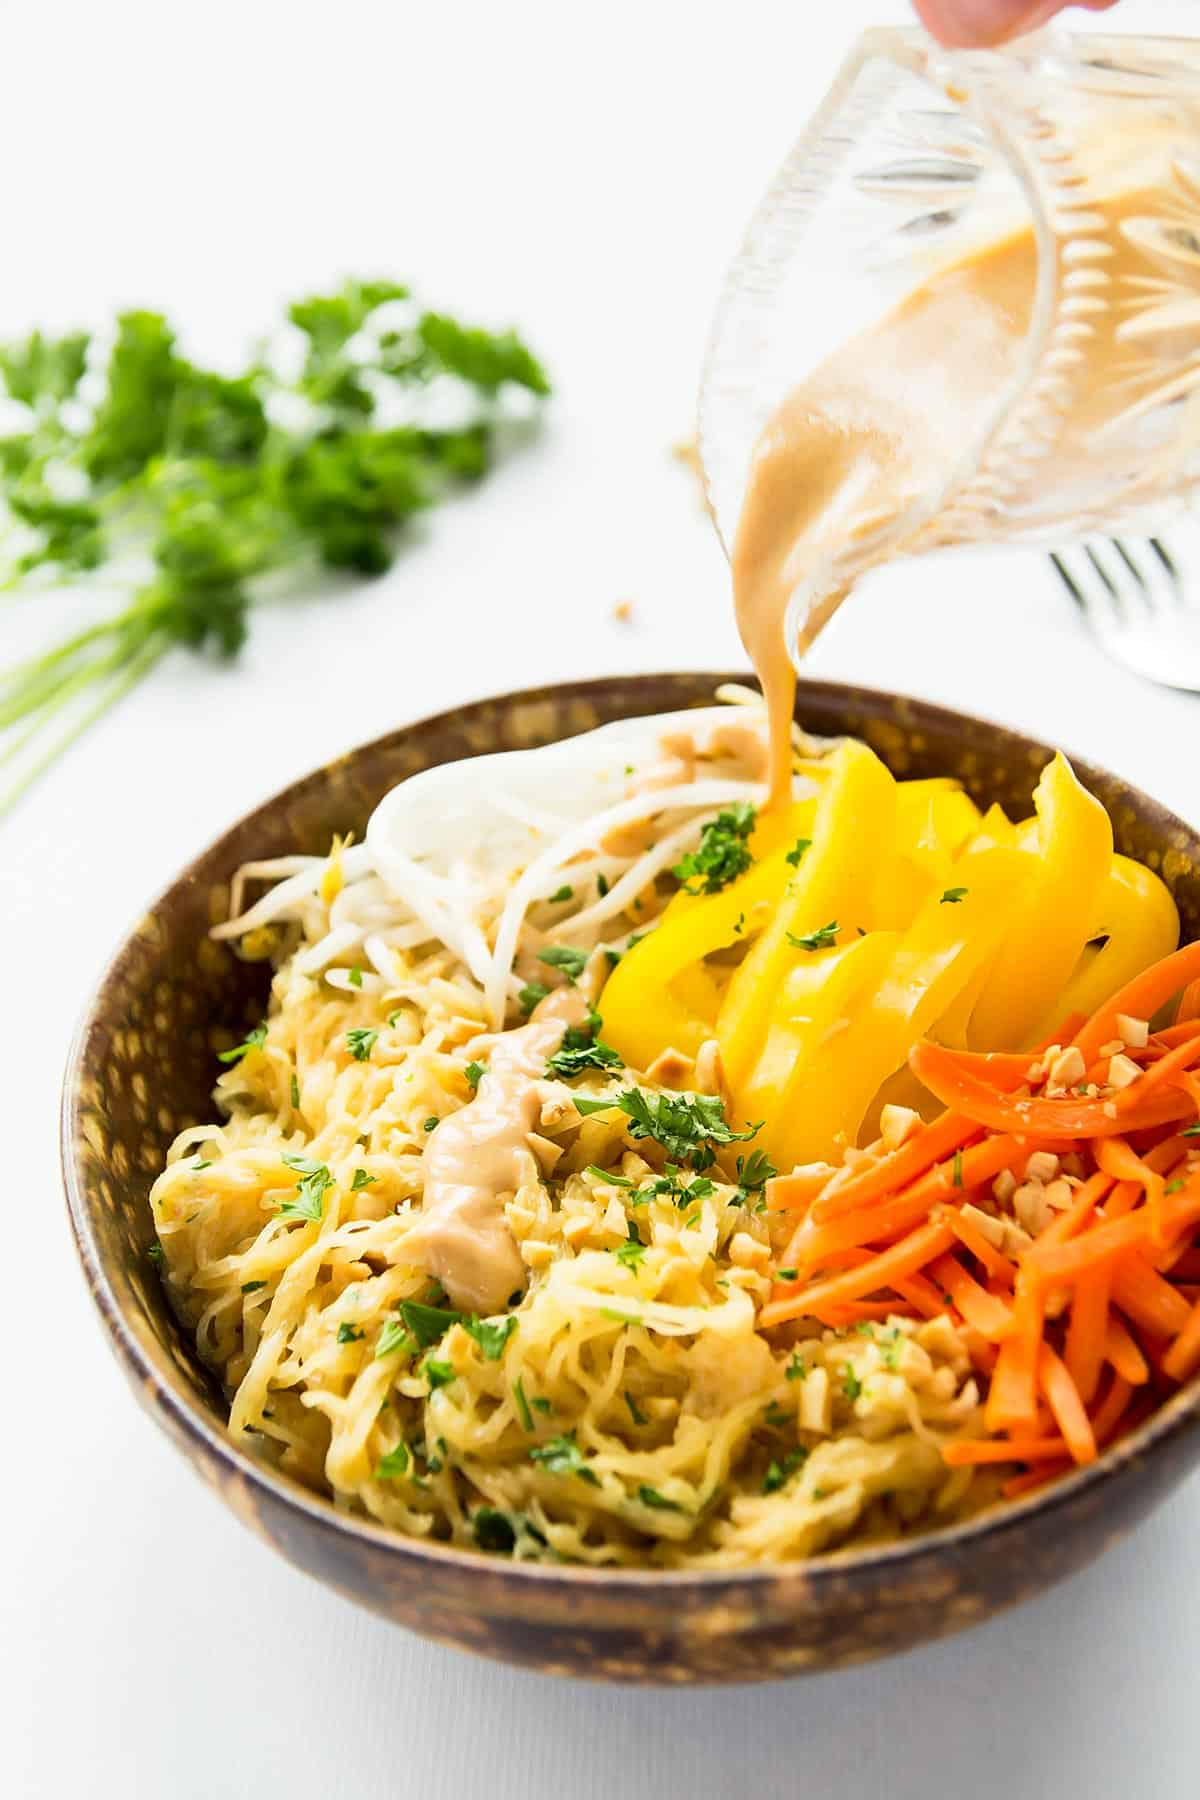 Healthy Thai Spaghetti Squash with delicious peanut sauce makes a great side dish or base for a grain-free Pad Thai recipe. This recipe is gluten-free, vegan, and clean eating. The peanut sauce makes a great dip too.